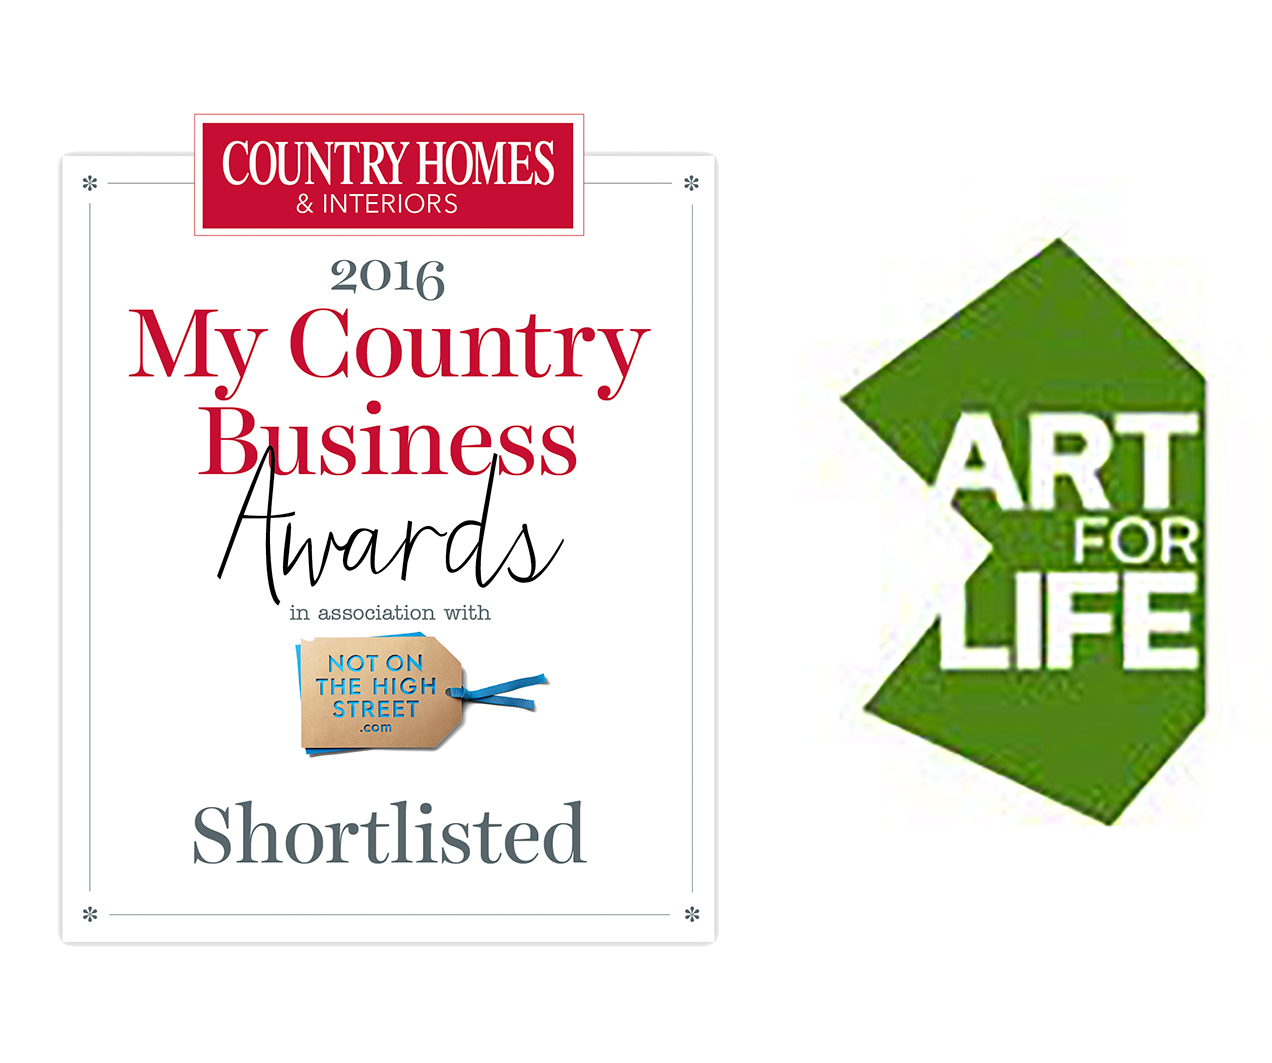 Abigayle has previously been commissioned by 'Art for Life'.She was also shortlisted for the 'My country business awards' 2016. - .